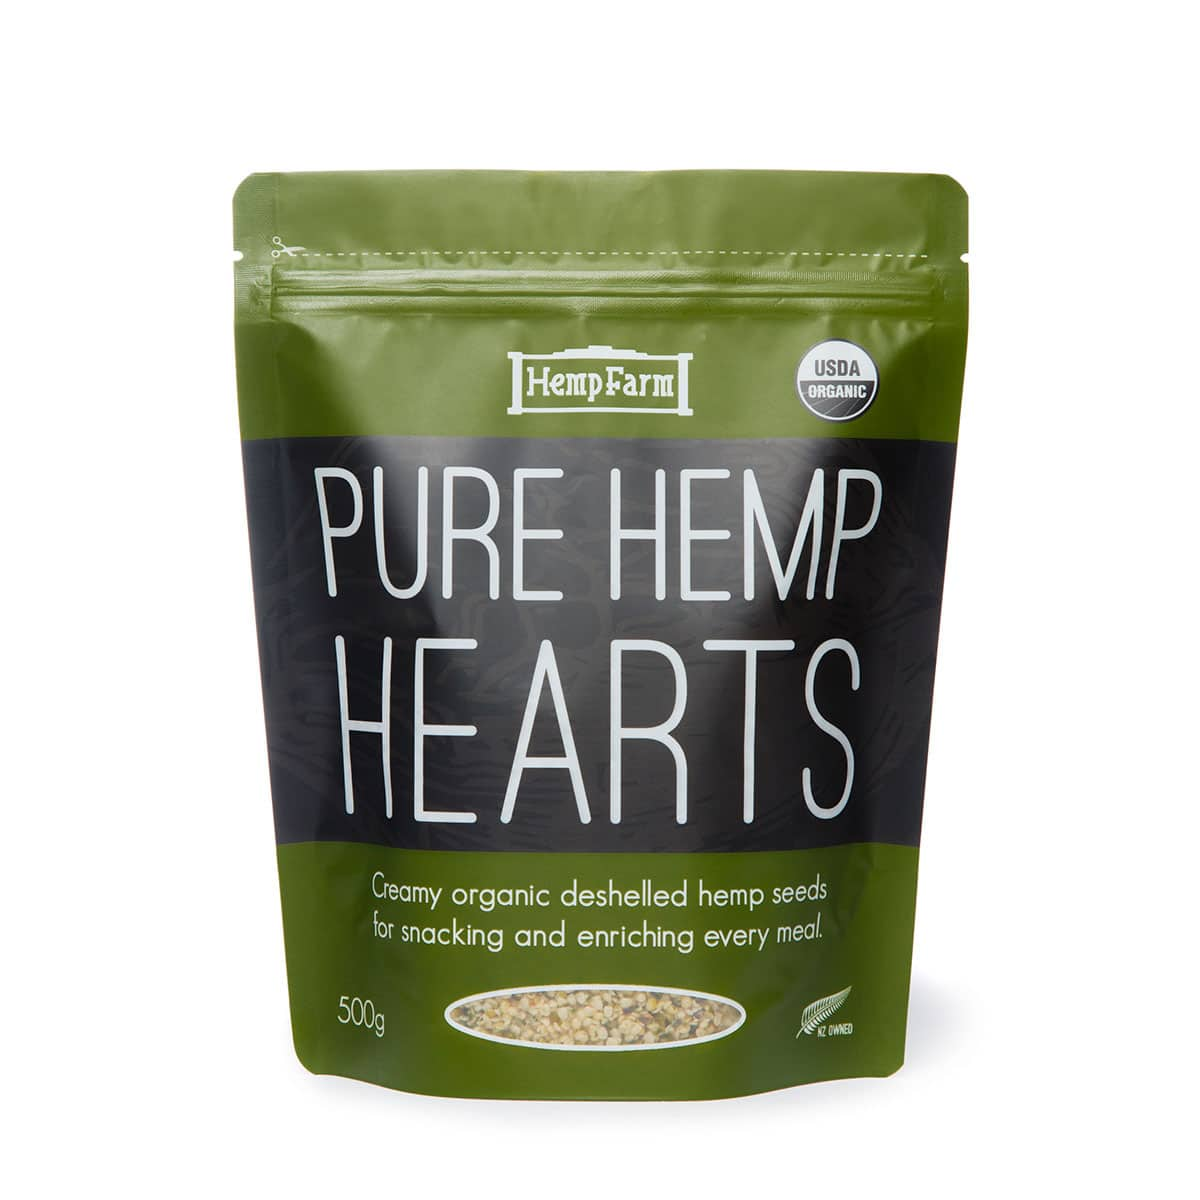 Hemp Farm: Pure Hemp Hearts - 500g